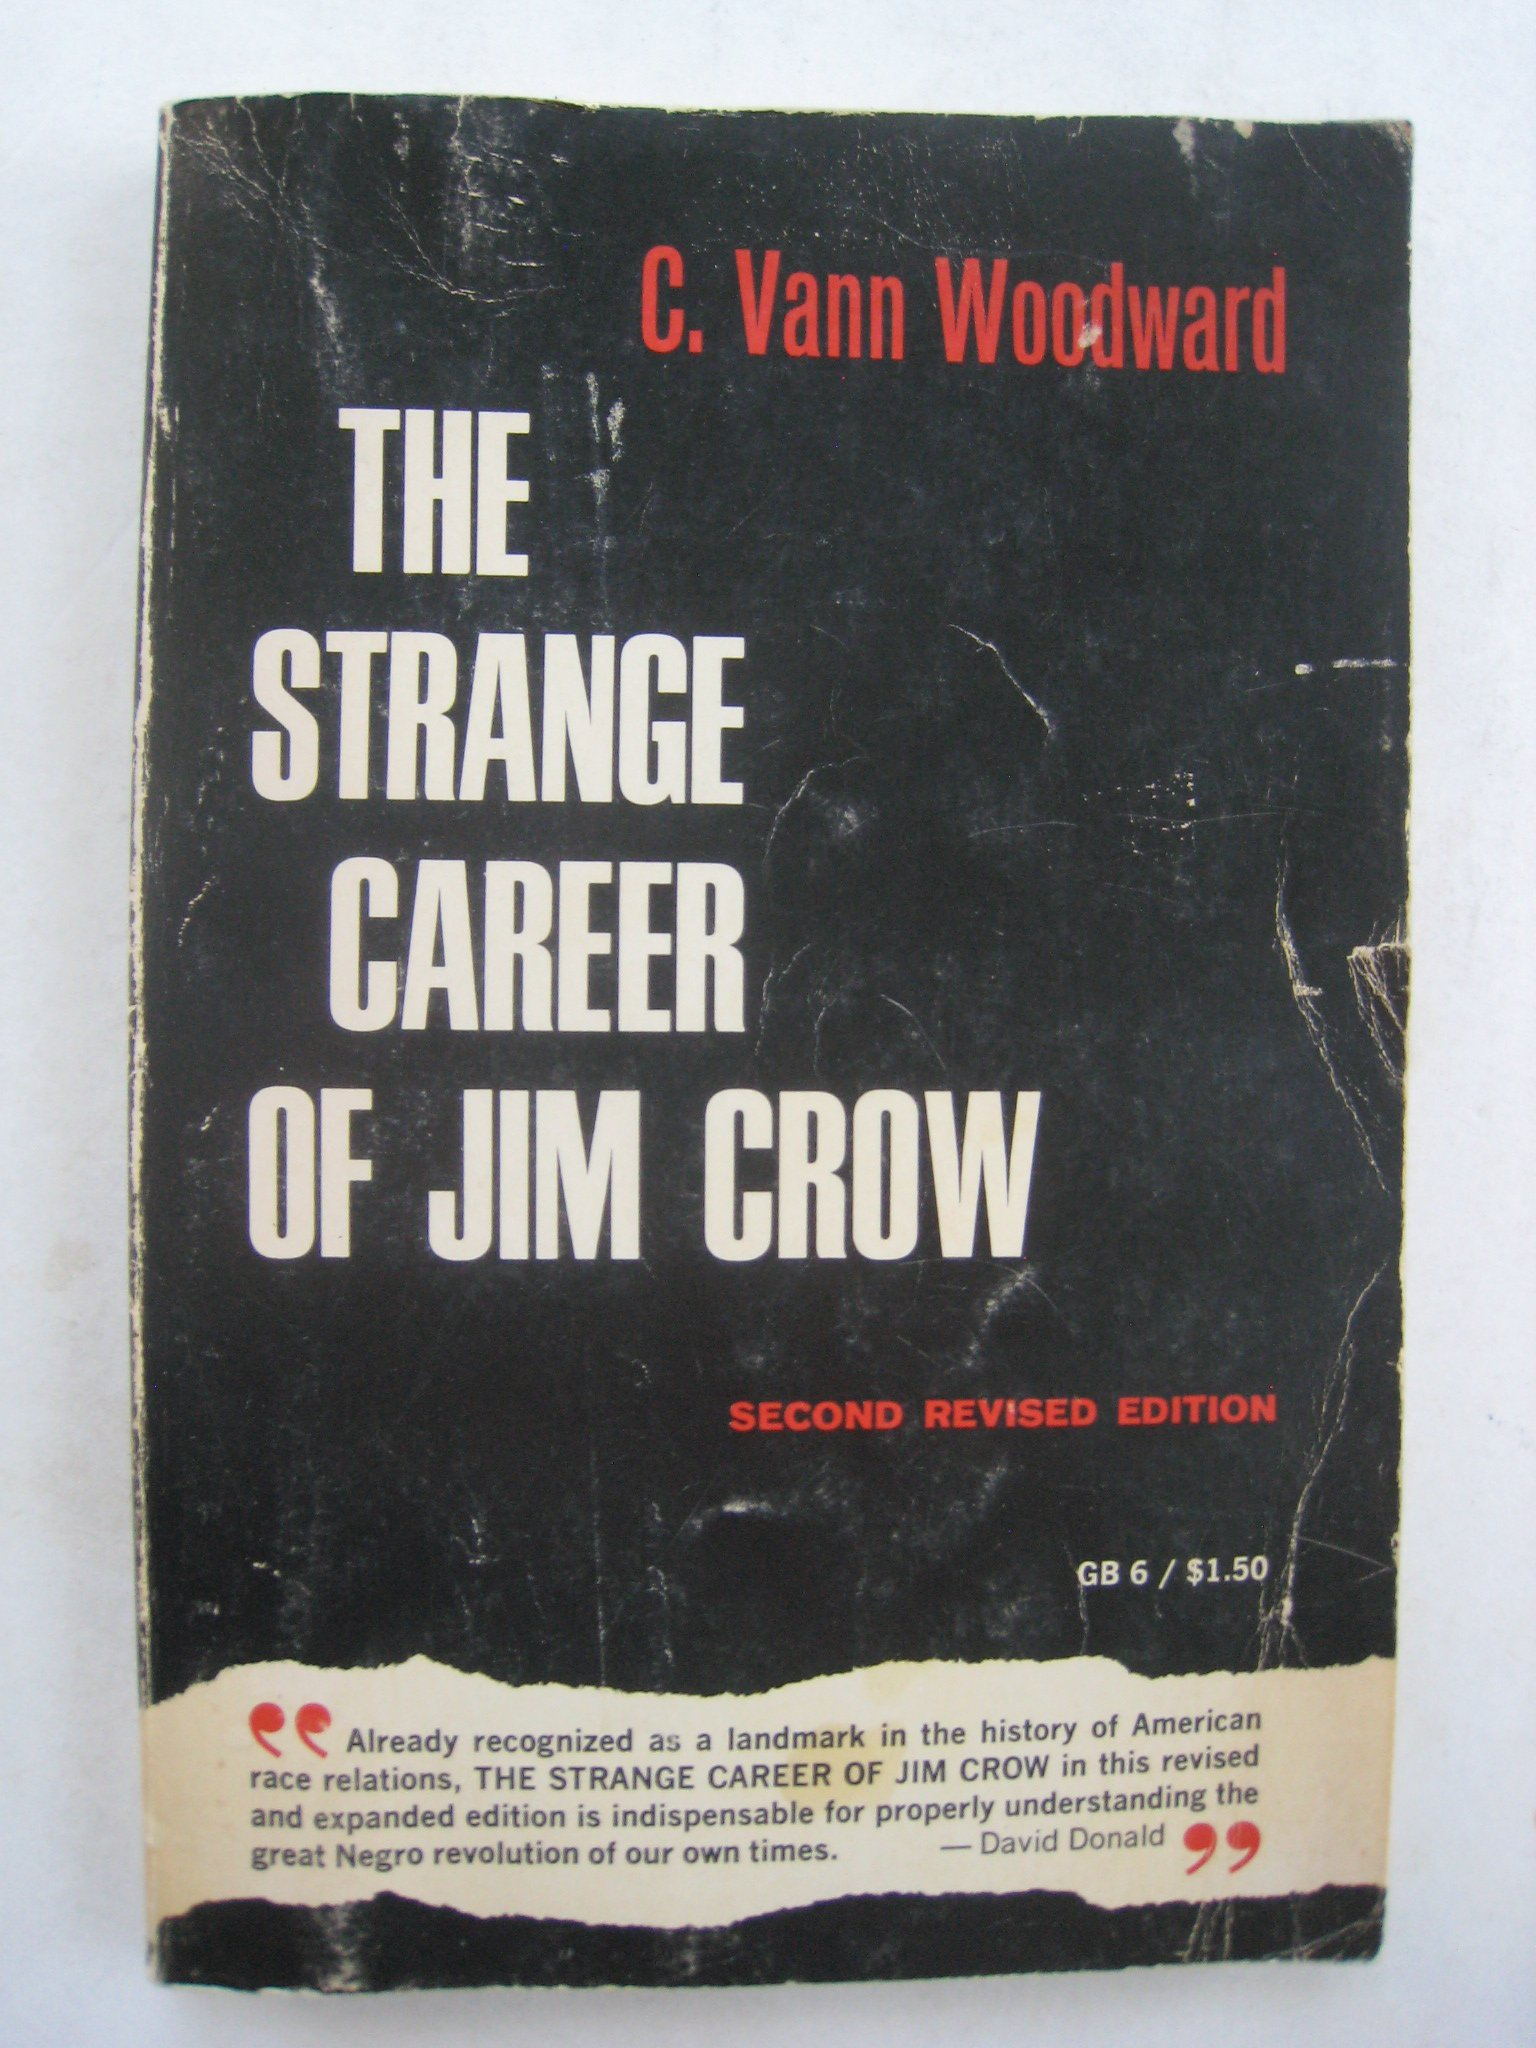 The Strange Career of Jim Crow -- Second 2nd Revised Edition: C. Vann Woodward: Amazon.com: Books